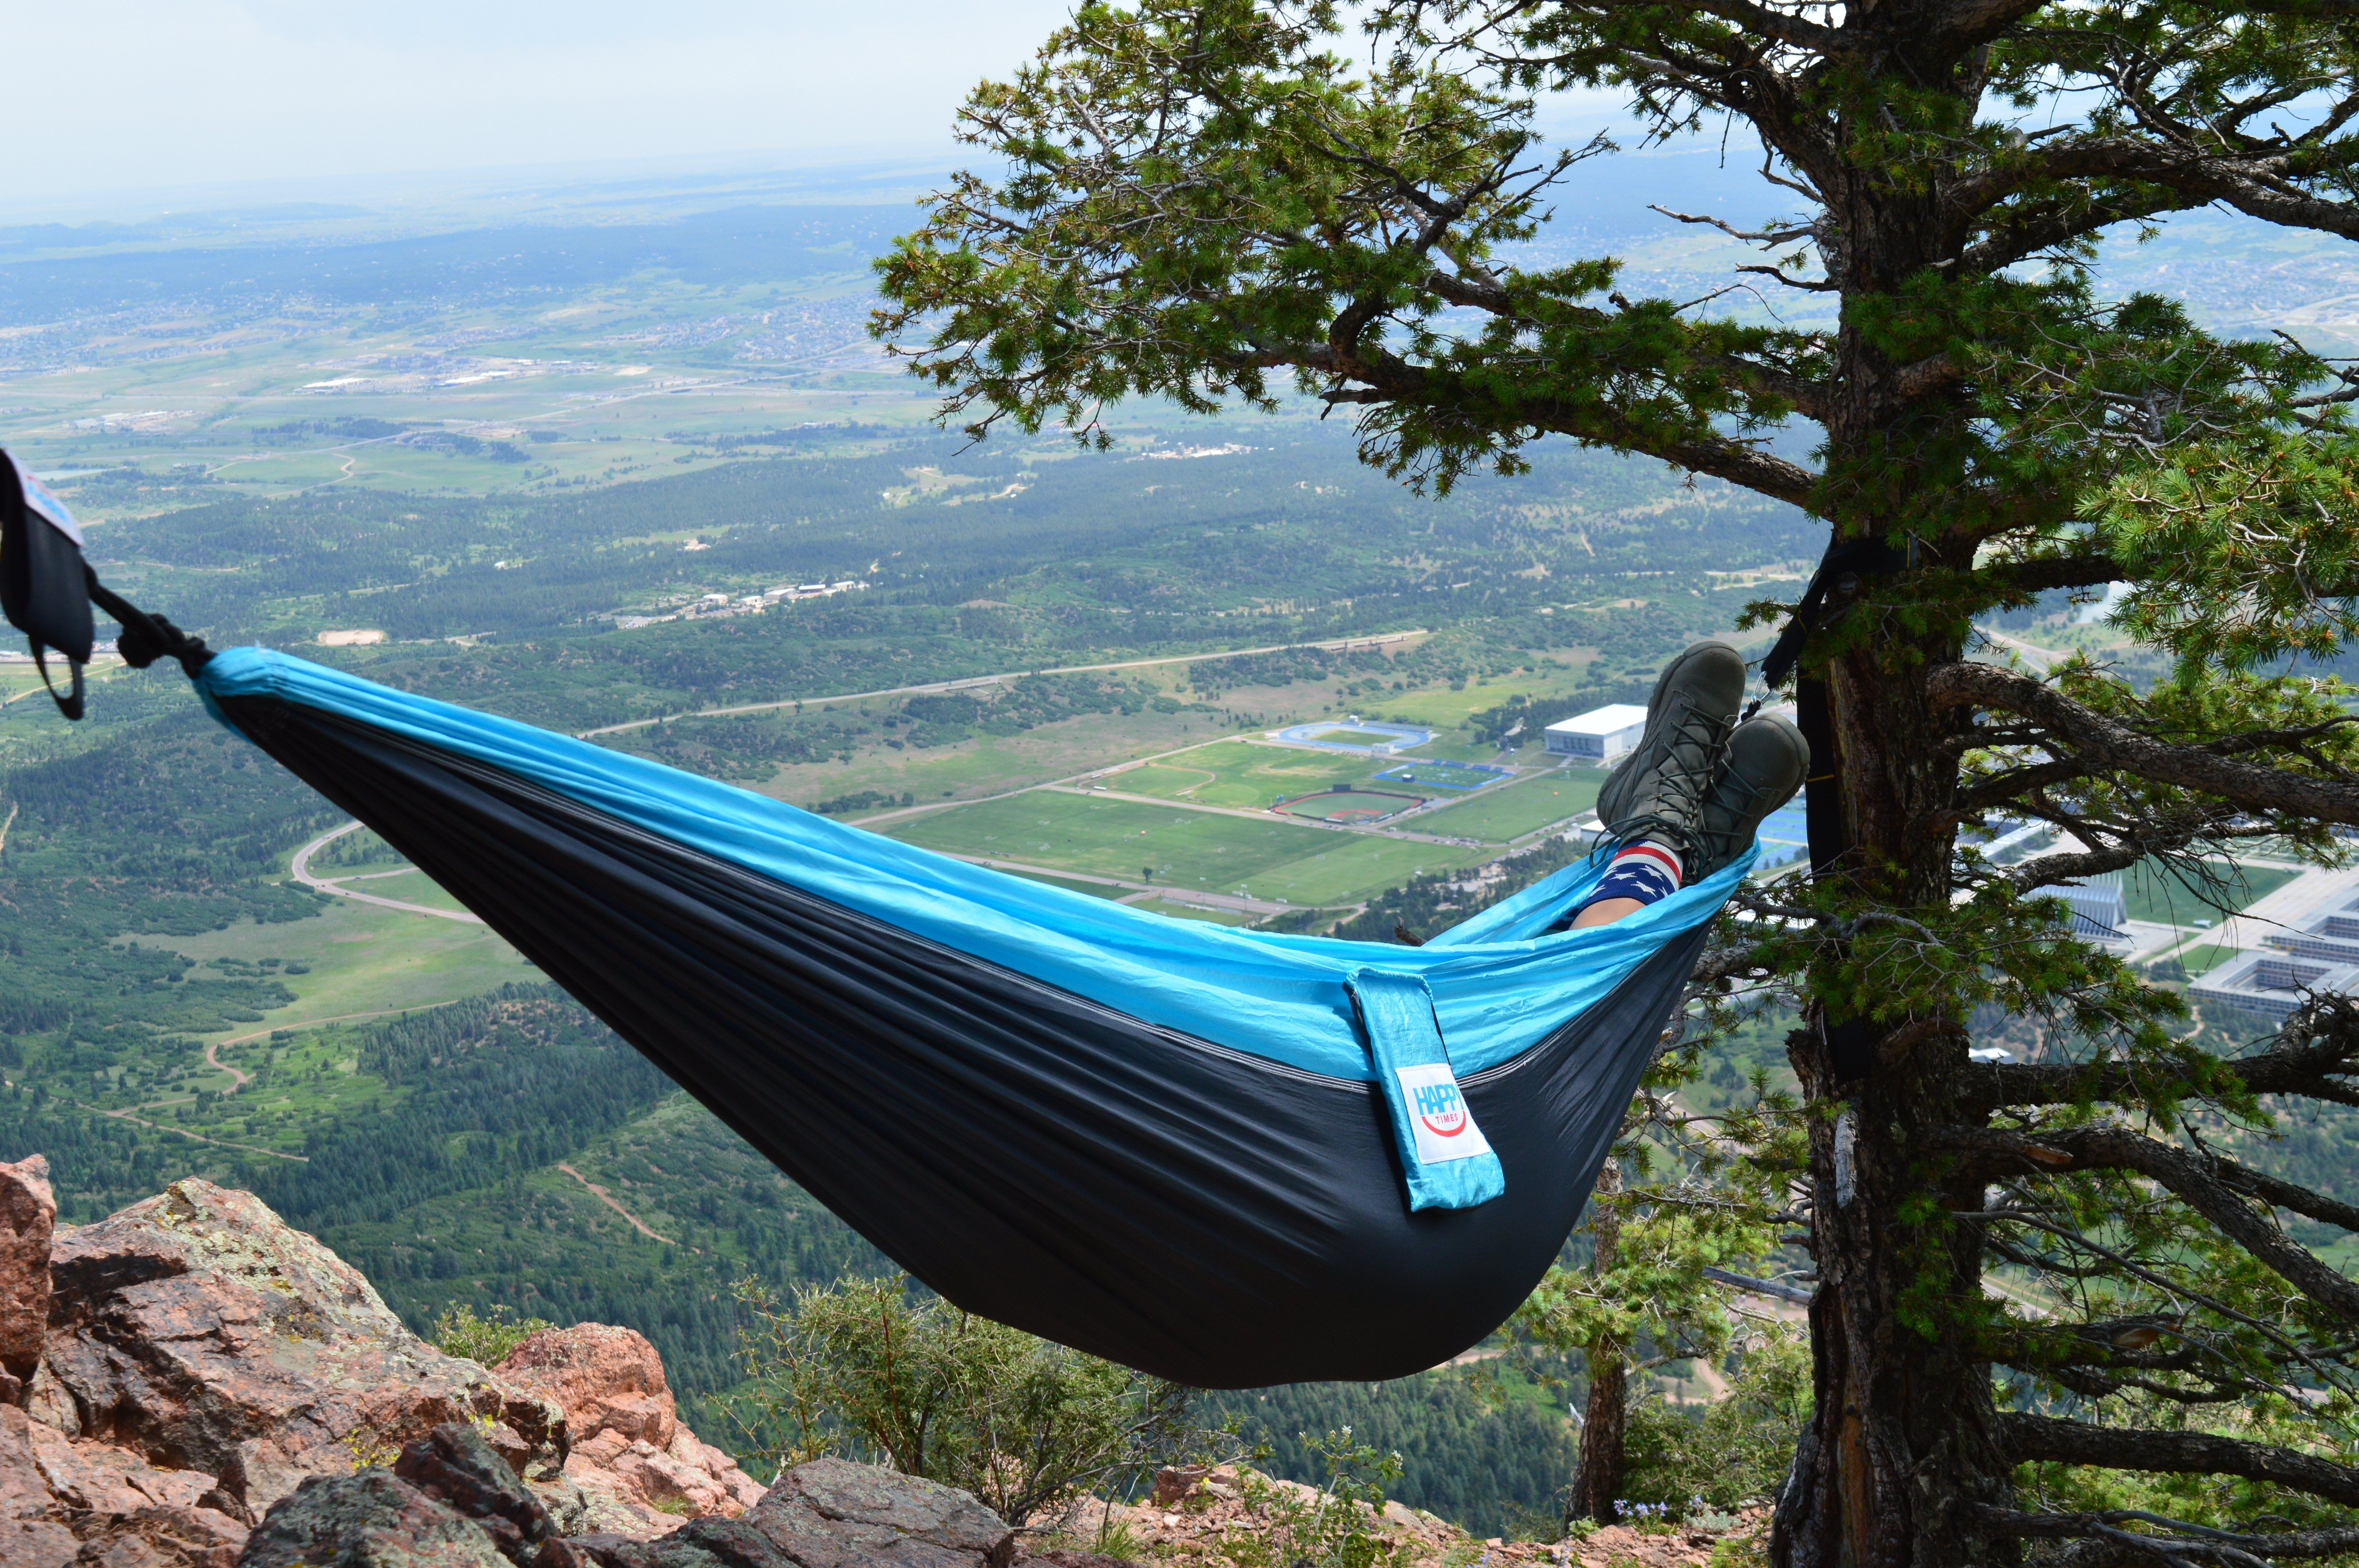 general travel military swing with bed parachute hammocks fabric product furniture camping hiking net anti mosquito hanging outdoor hammock store use